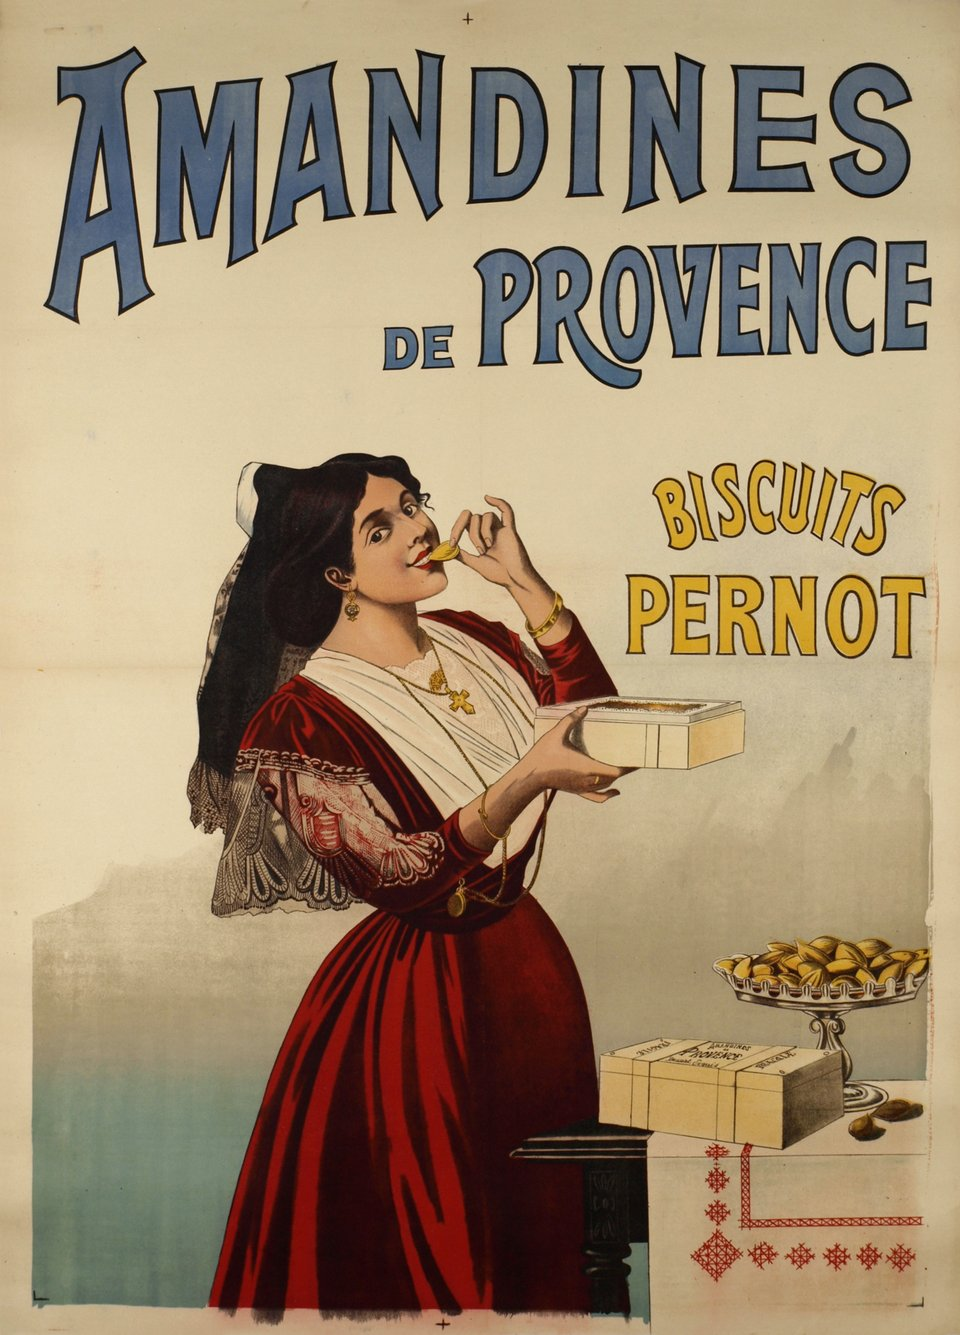 Amandines de Provence, biscuits Pernot – Vintage poster – ANONYMOUS – 1900